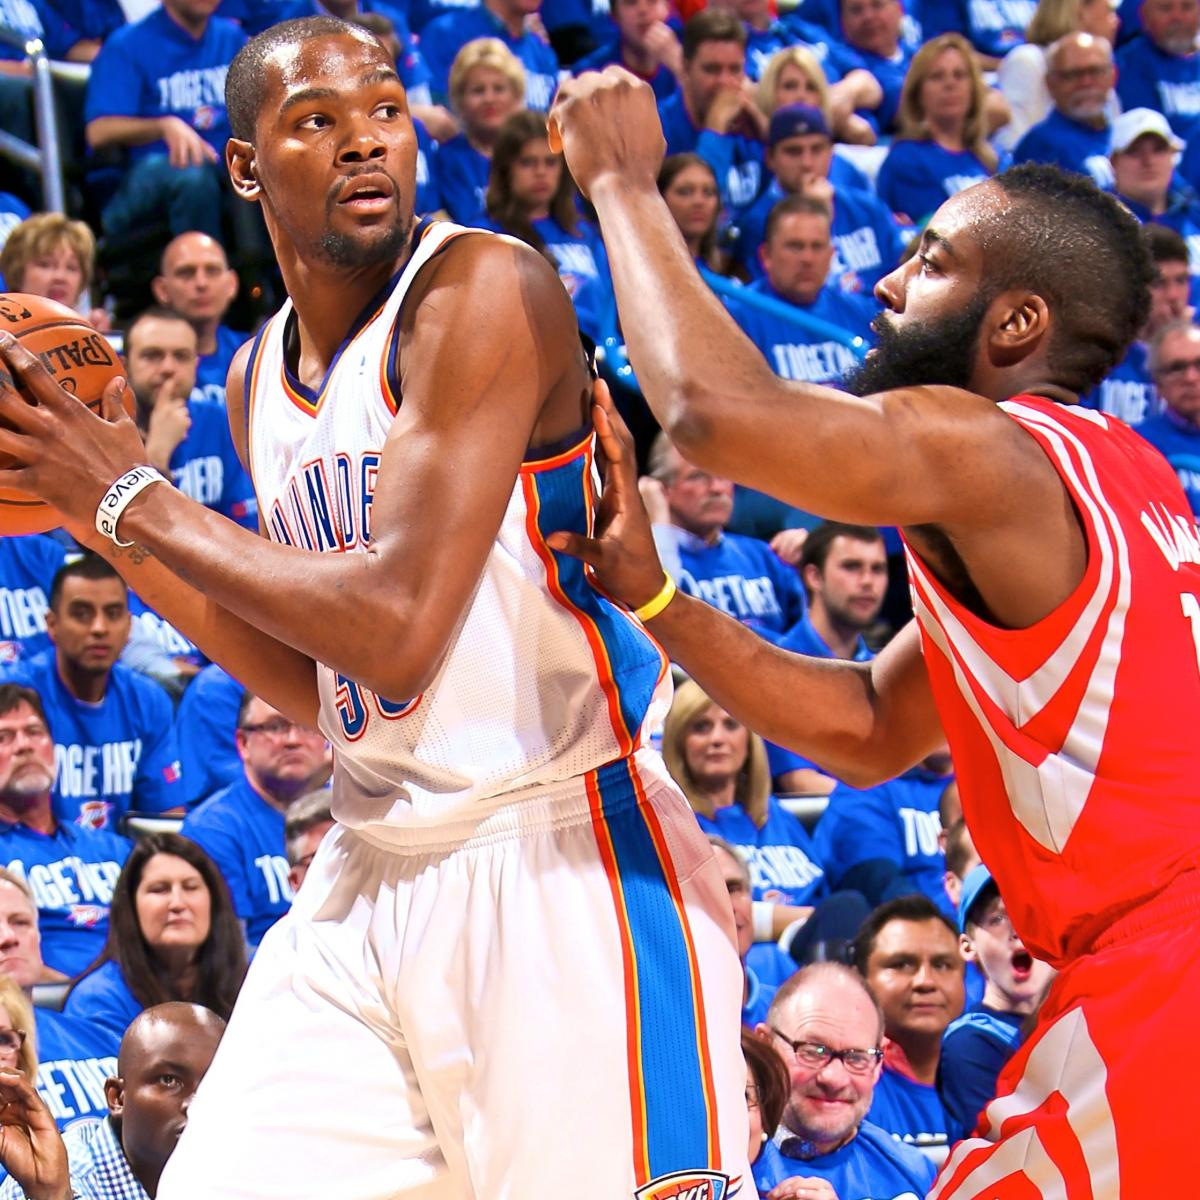 Houston Rockets Vs Okc: Houston Rockets Vs. Oklahoma City Thunder: Postgame Grades